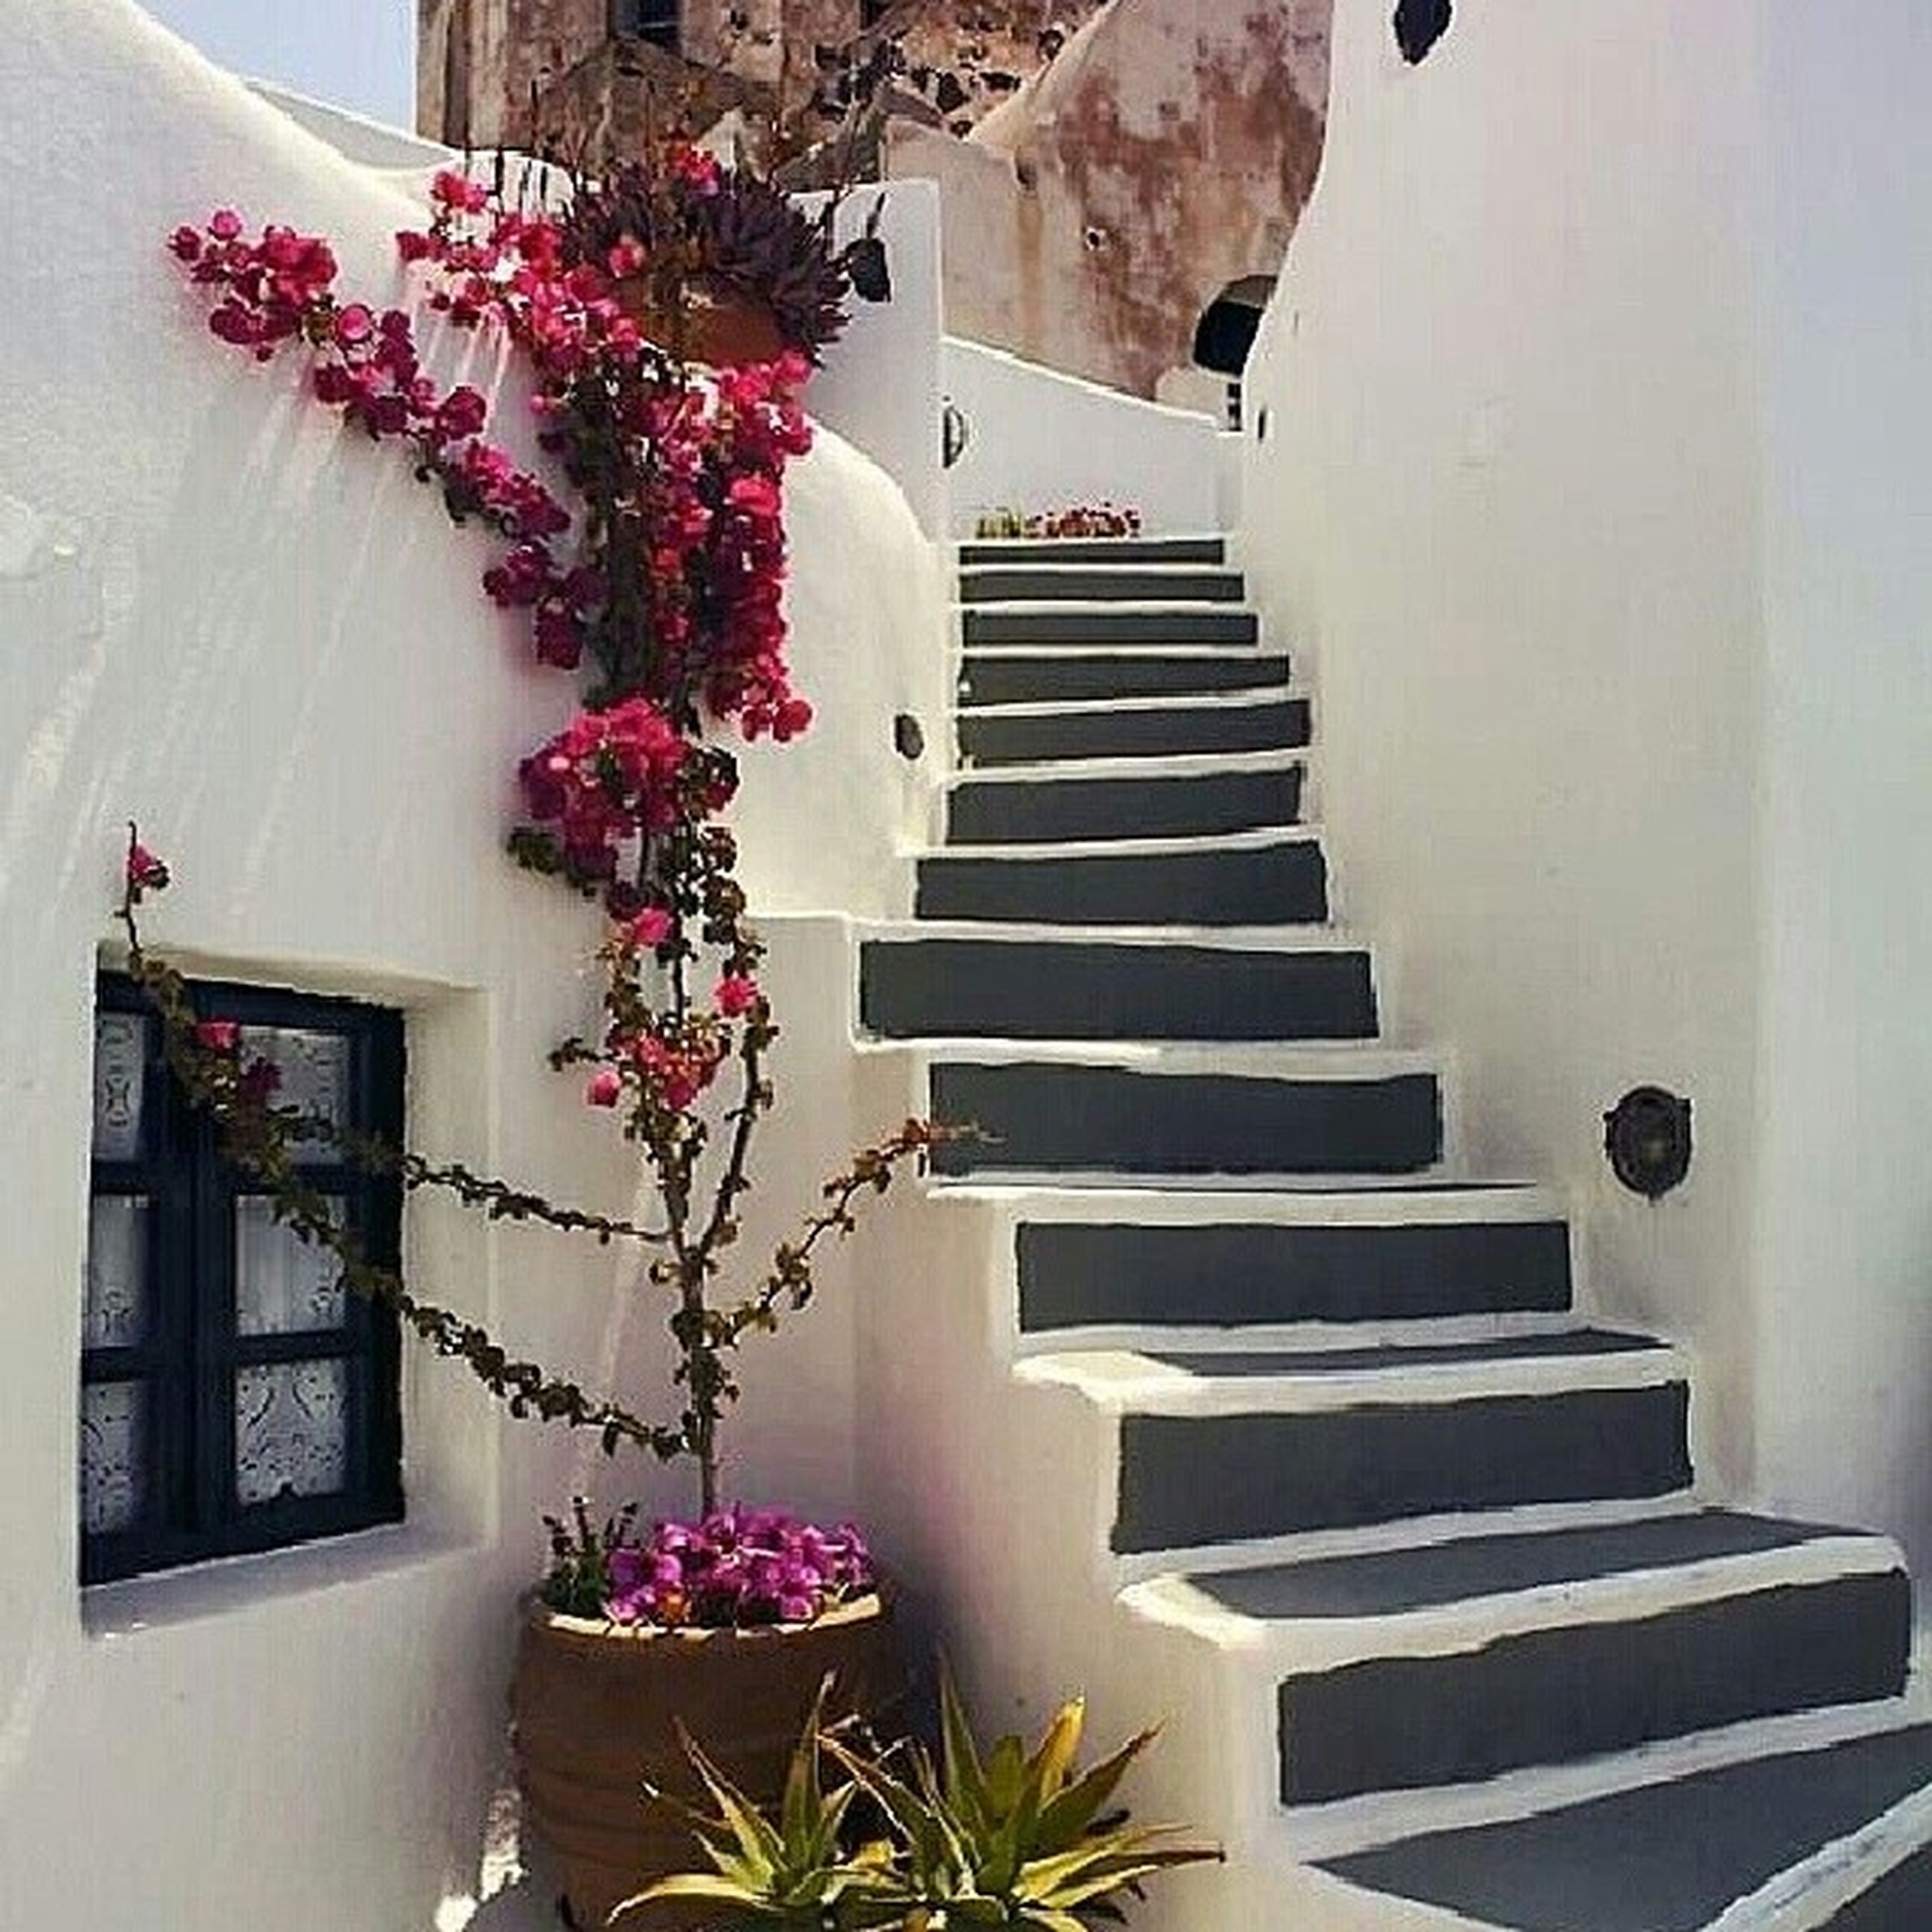 architecture, built structure, flower, building exterior, steps, staircase, steps and staircases, low angle view, house, growth, plant, potted plant, railing, building, residential structure, no people, residential building, day, sunlight, outdoors